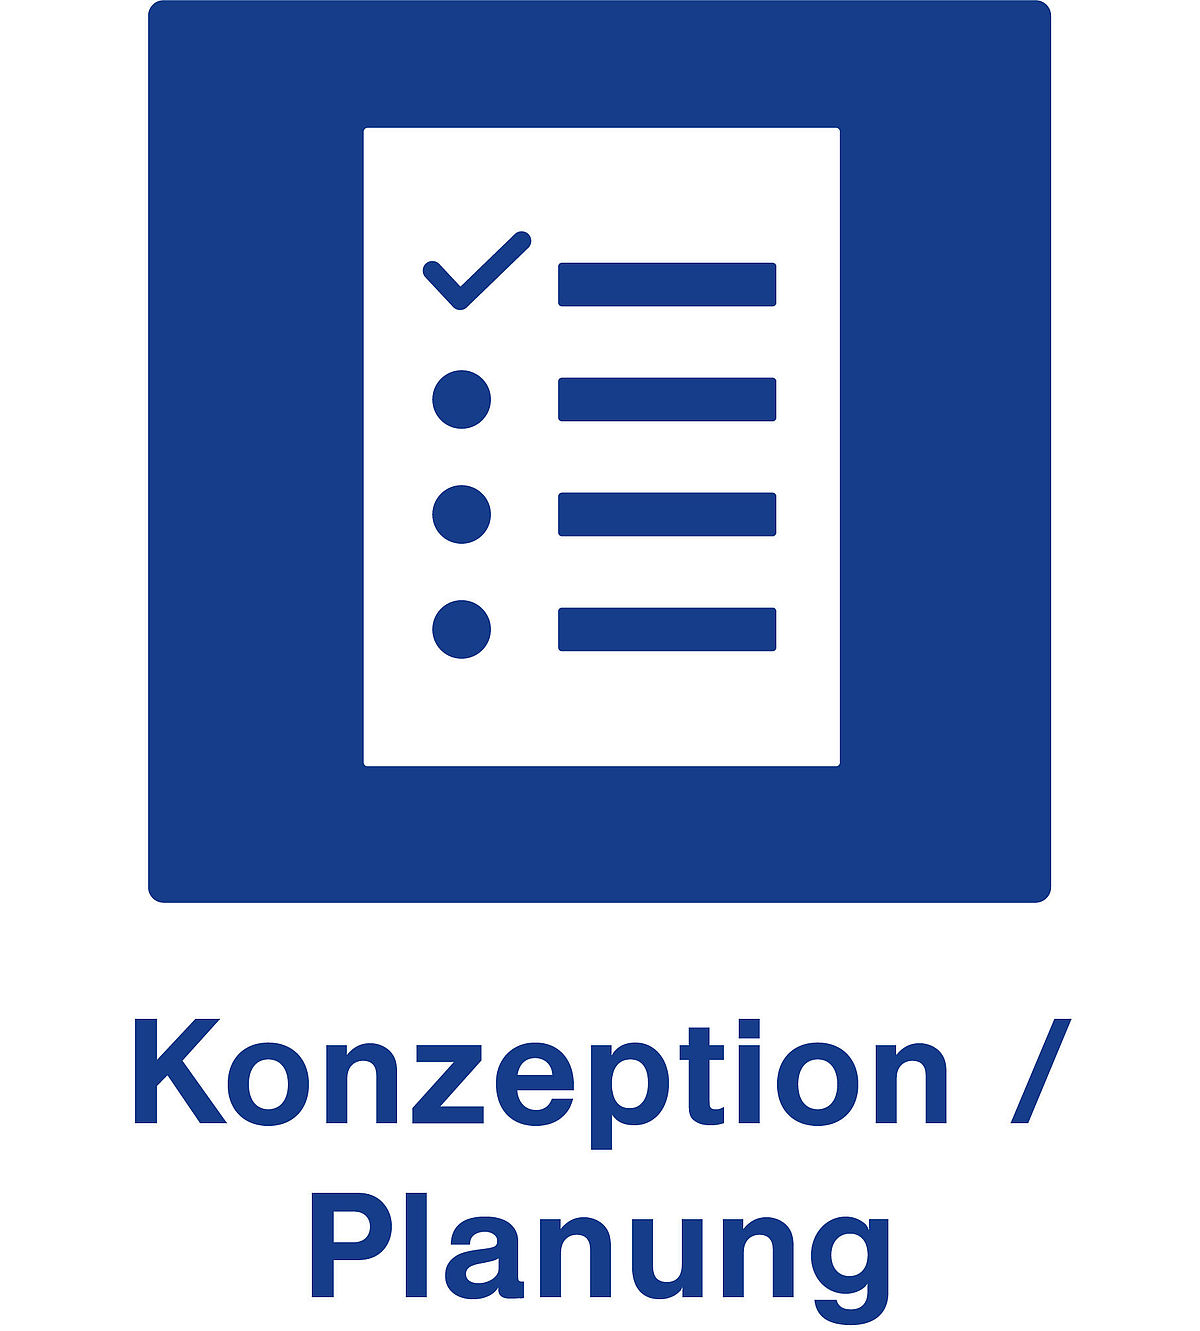 Konzeption / Planung Icon